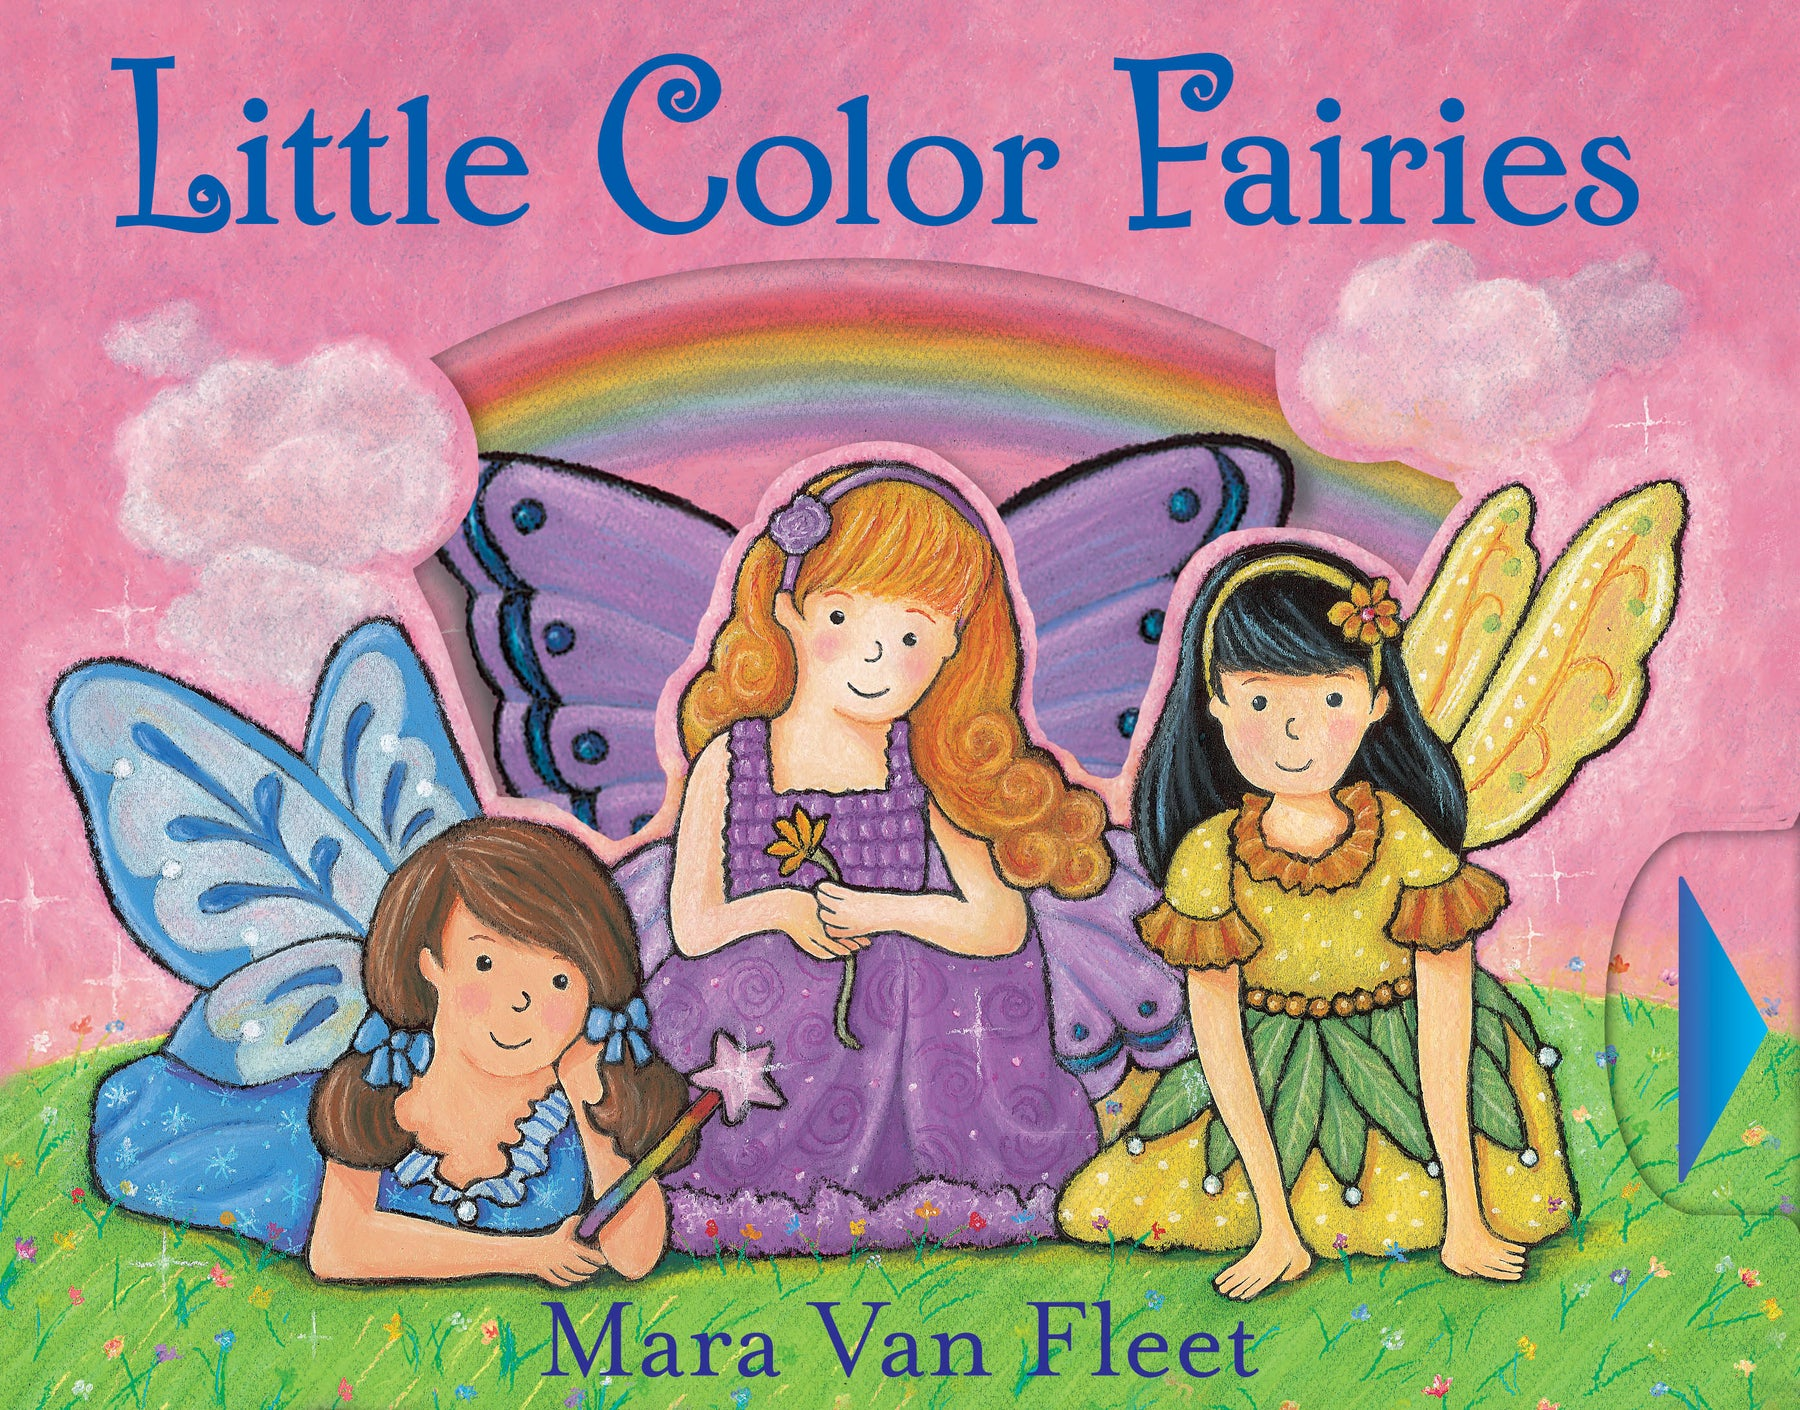 Little Color Fairies - JKA Toys